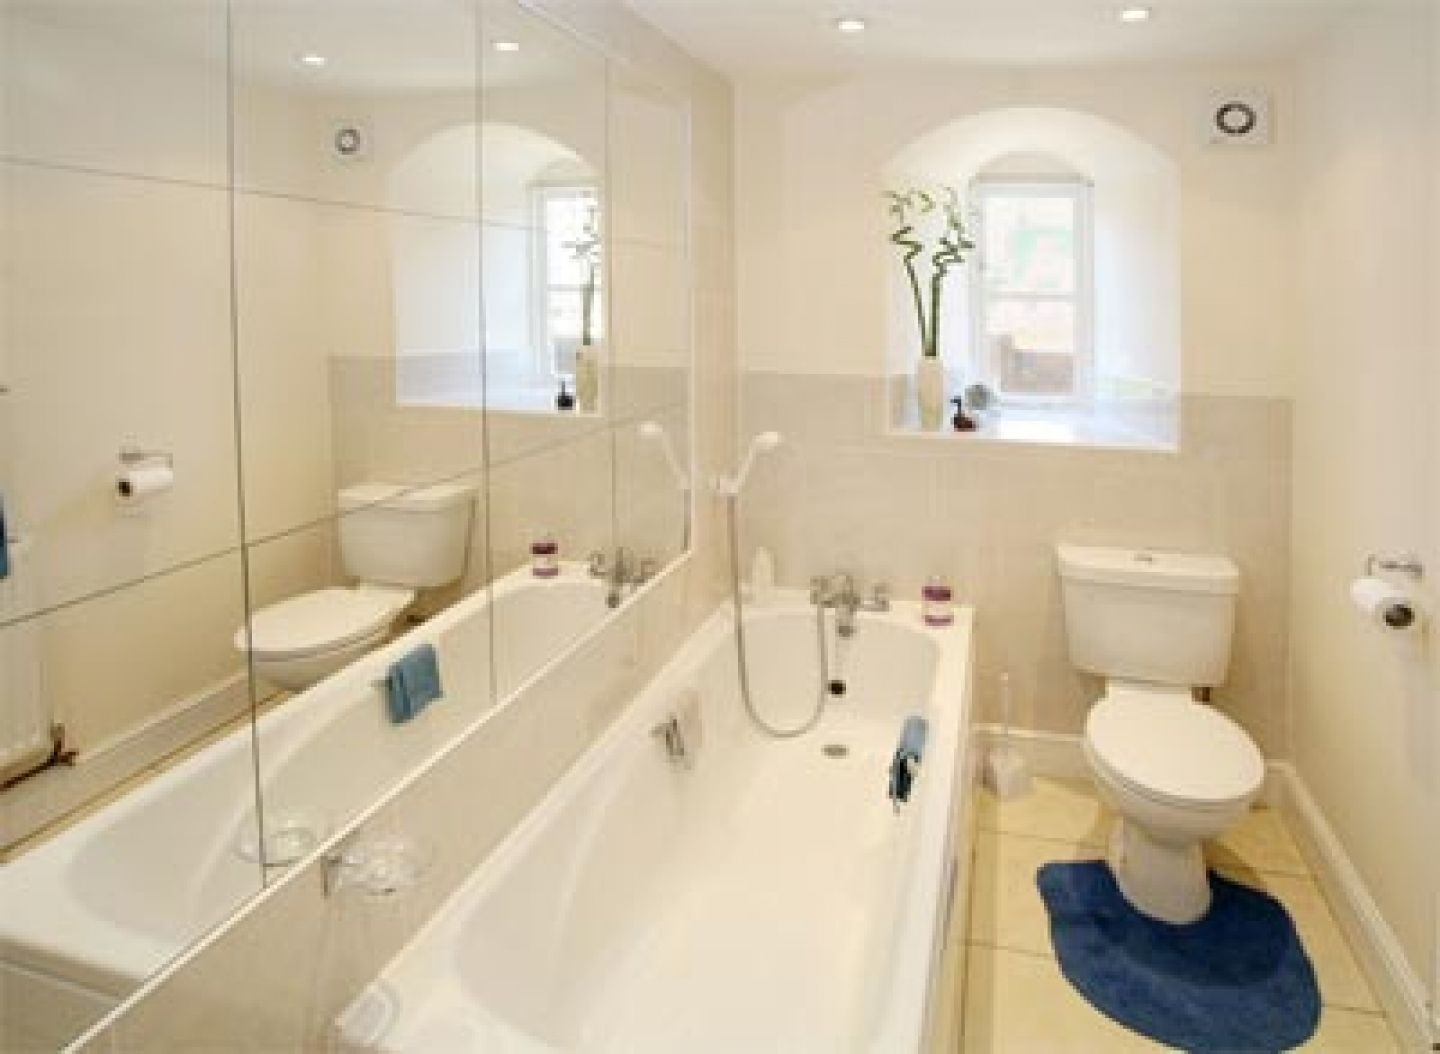 Web Photo Gallery How to Purchase a Beautiful Bathroom Suite on a Shoestring Budget Bathroom SmallBathroom ColorsDesign